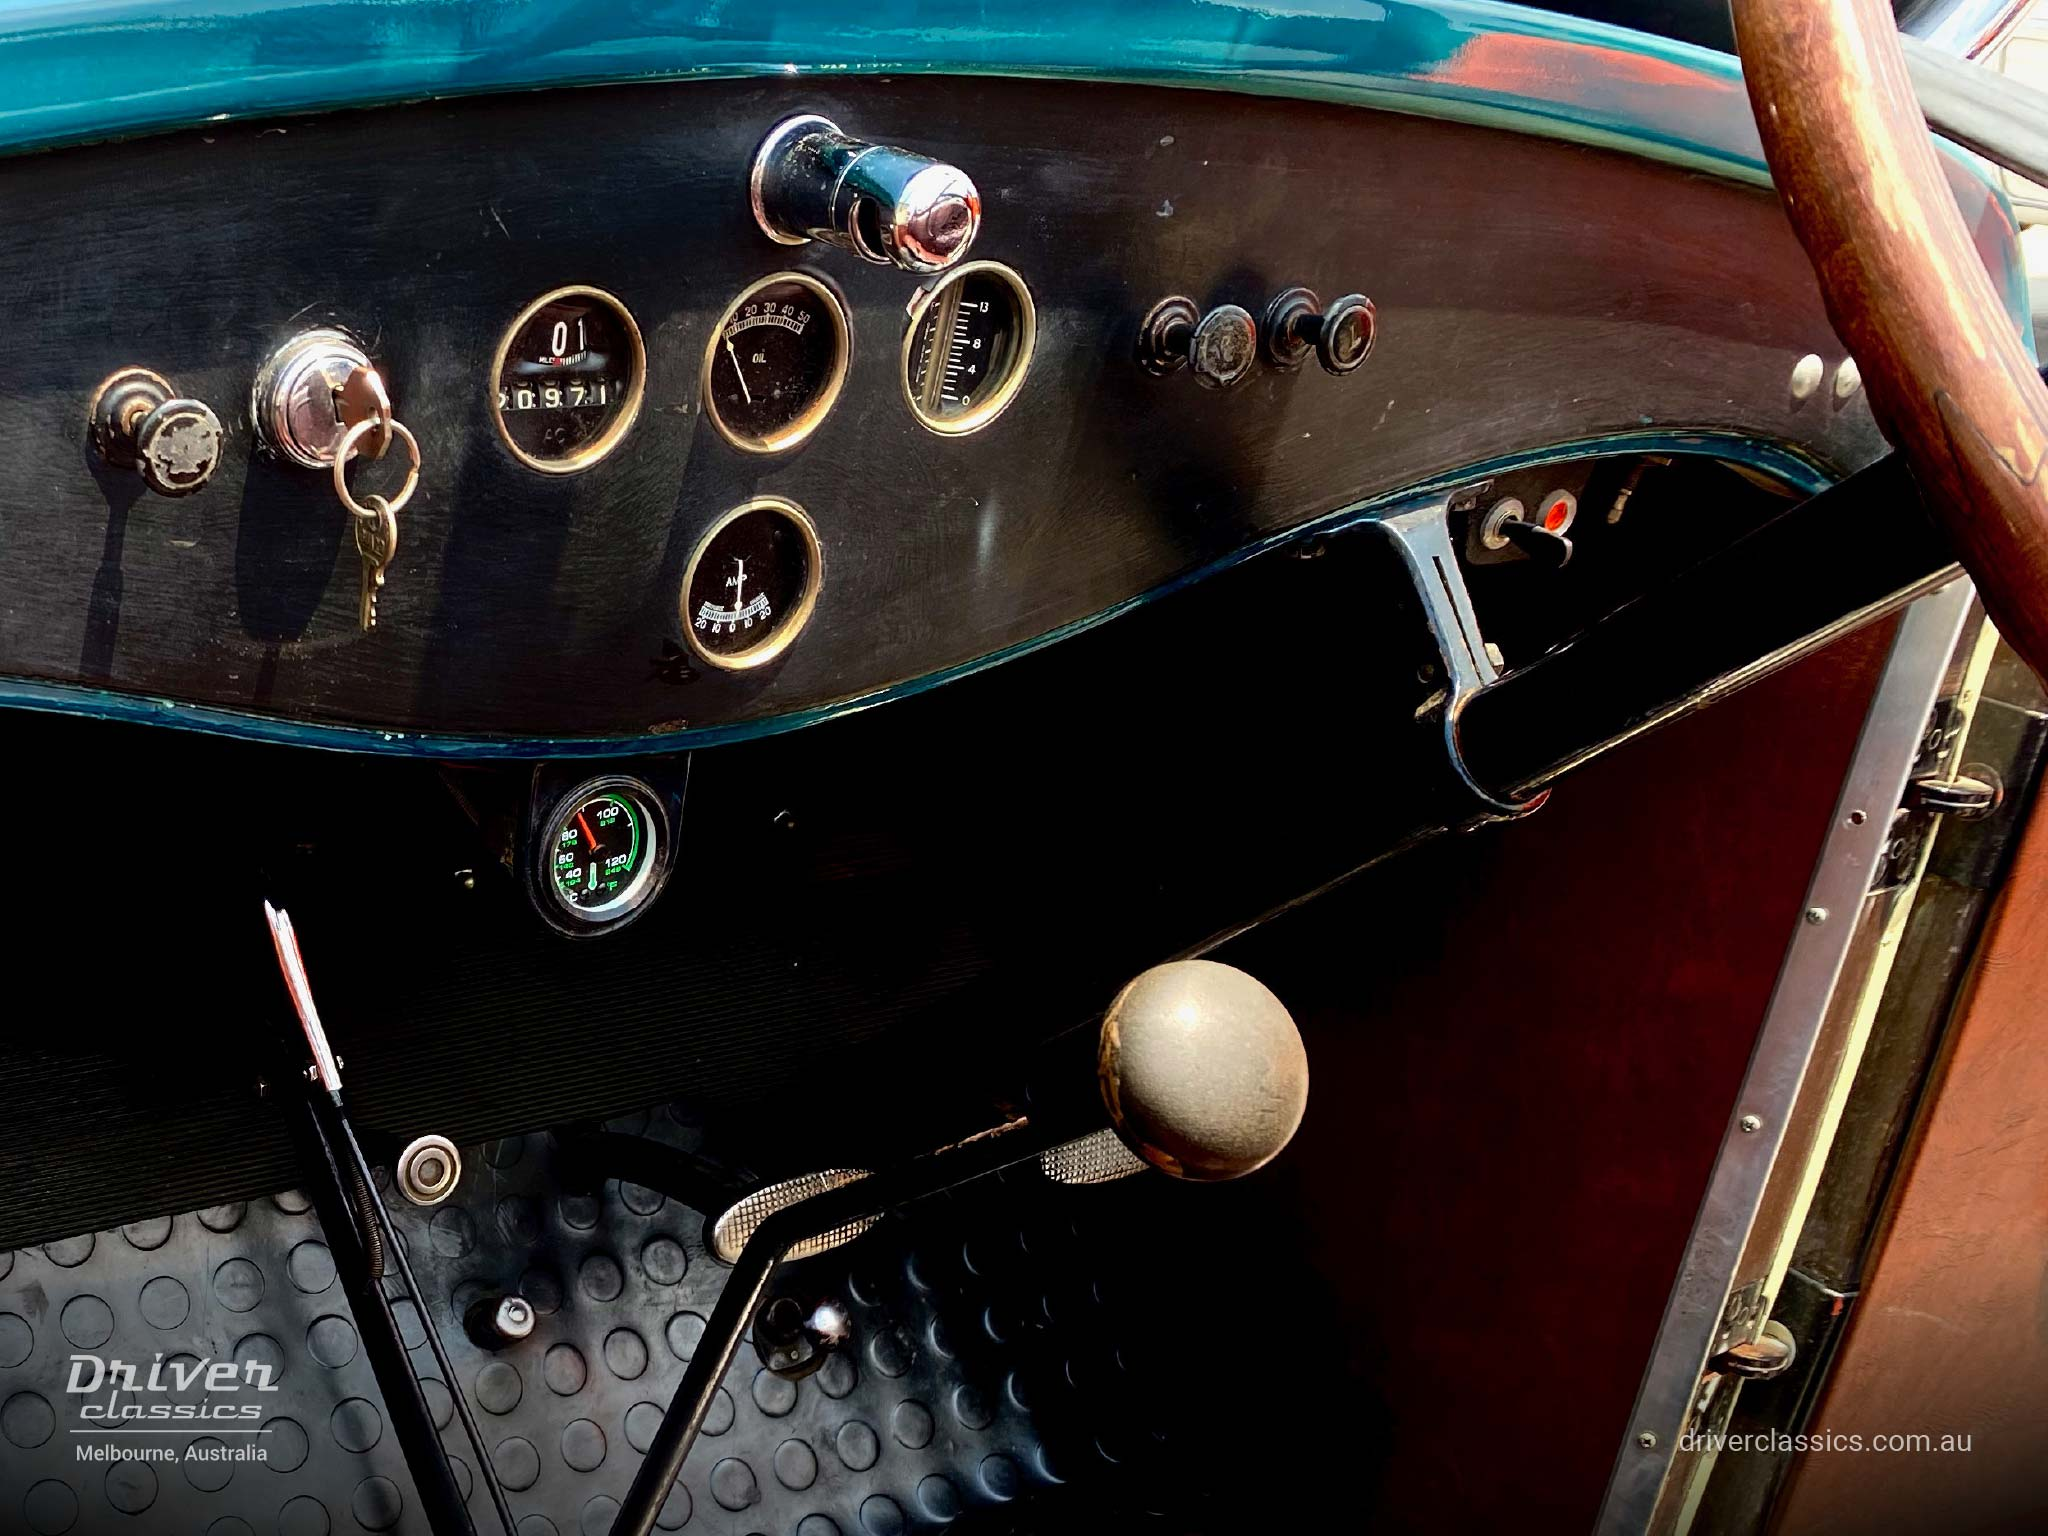 1929 Pontiac 29-6 car, dashboard and foot pedals, photo taken December 2019